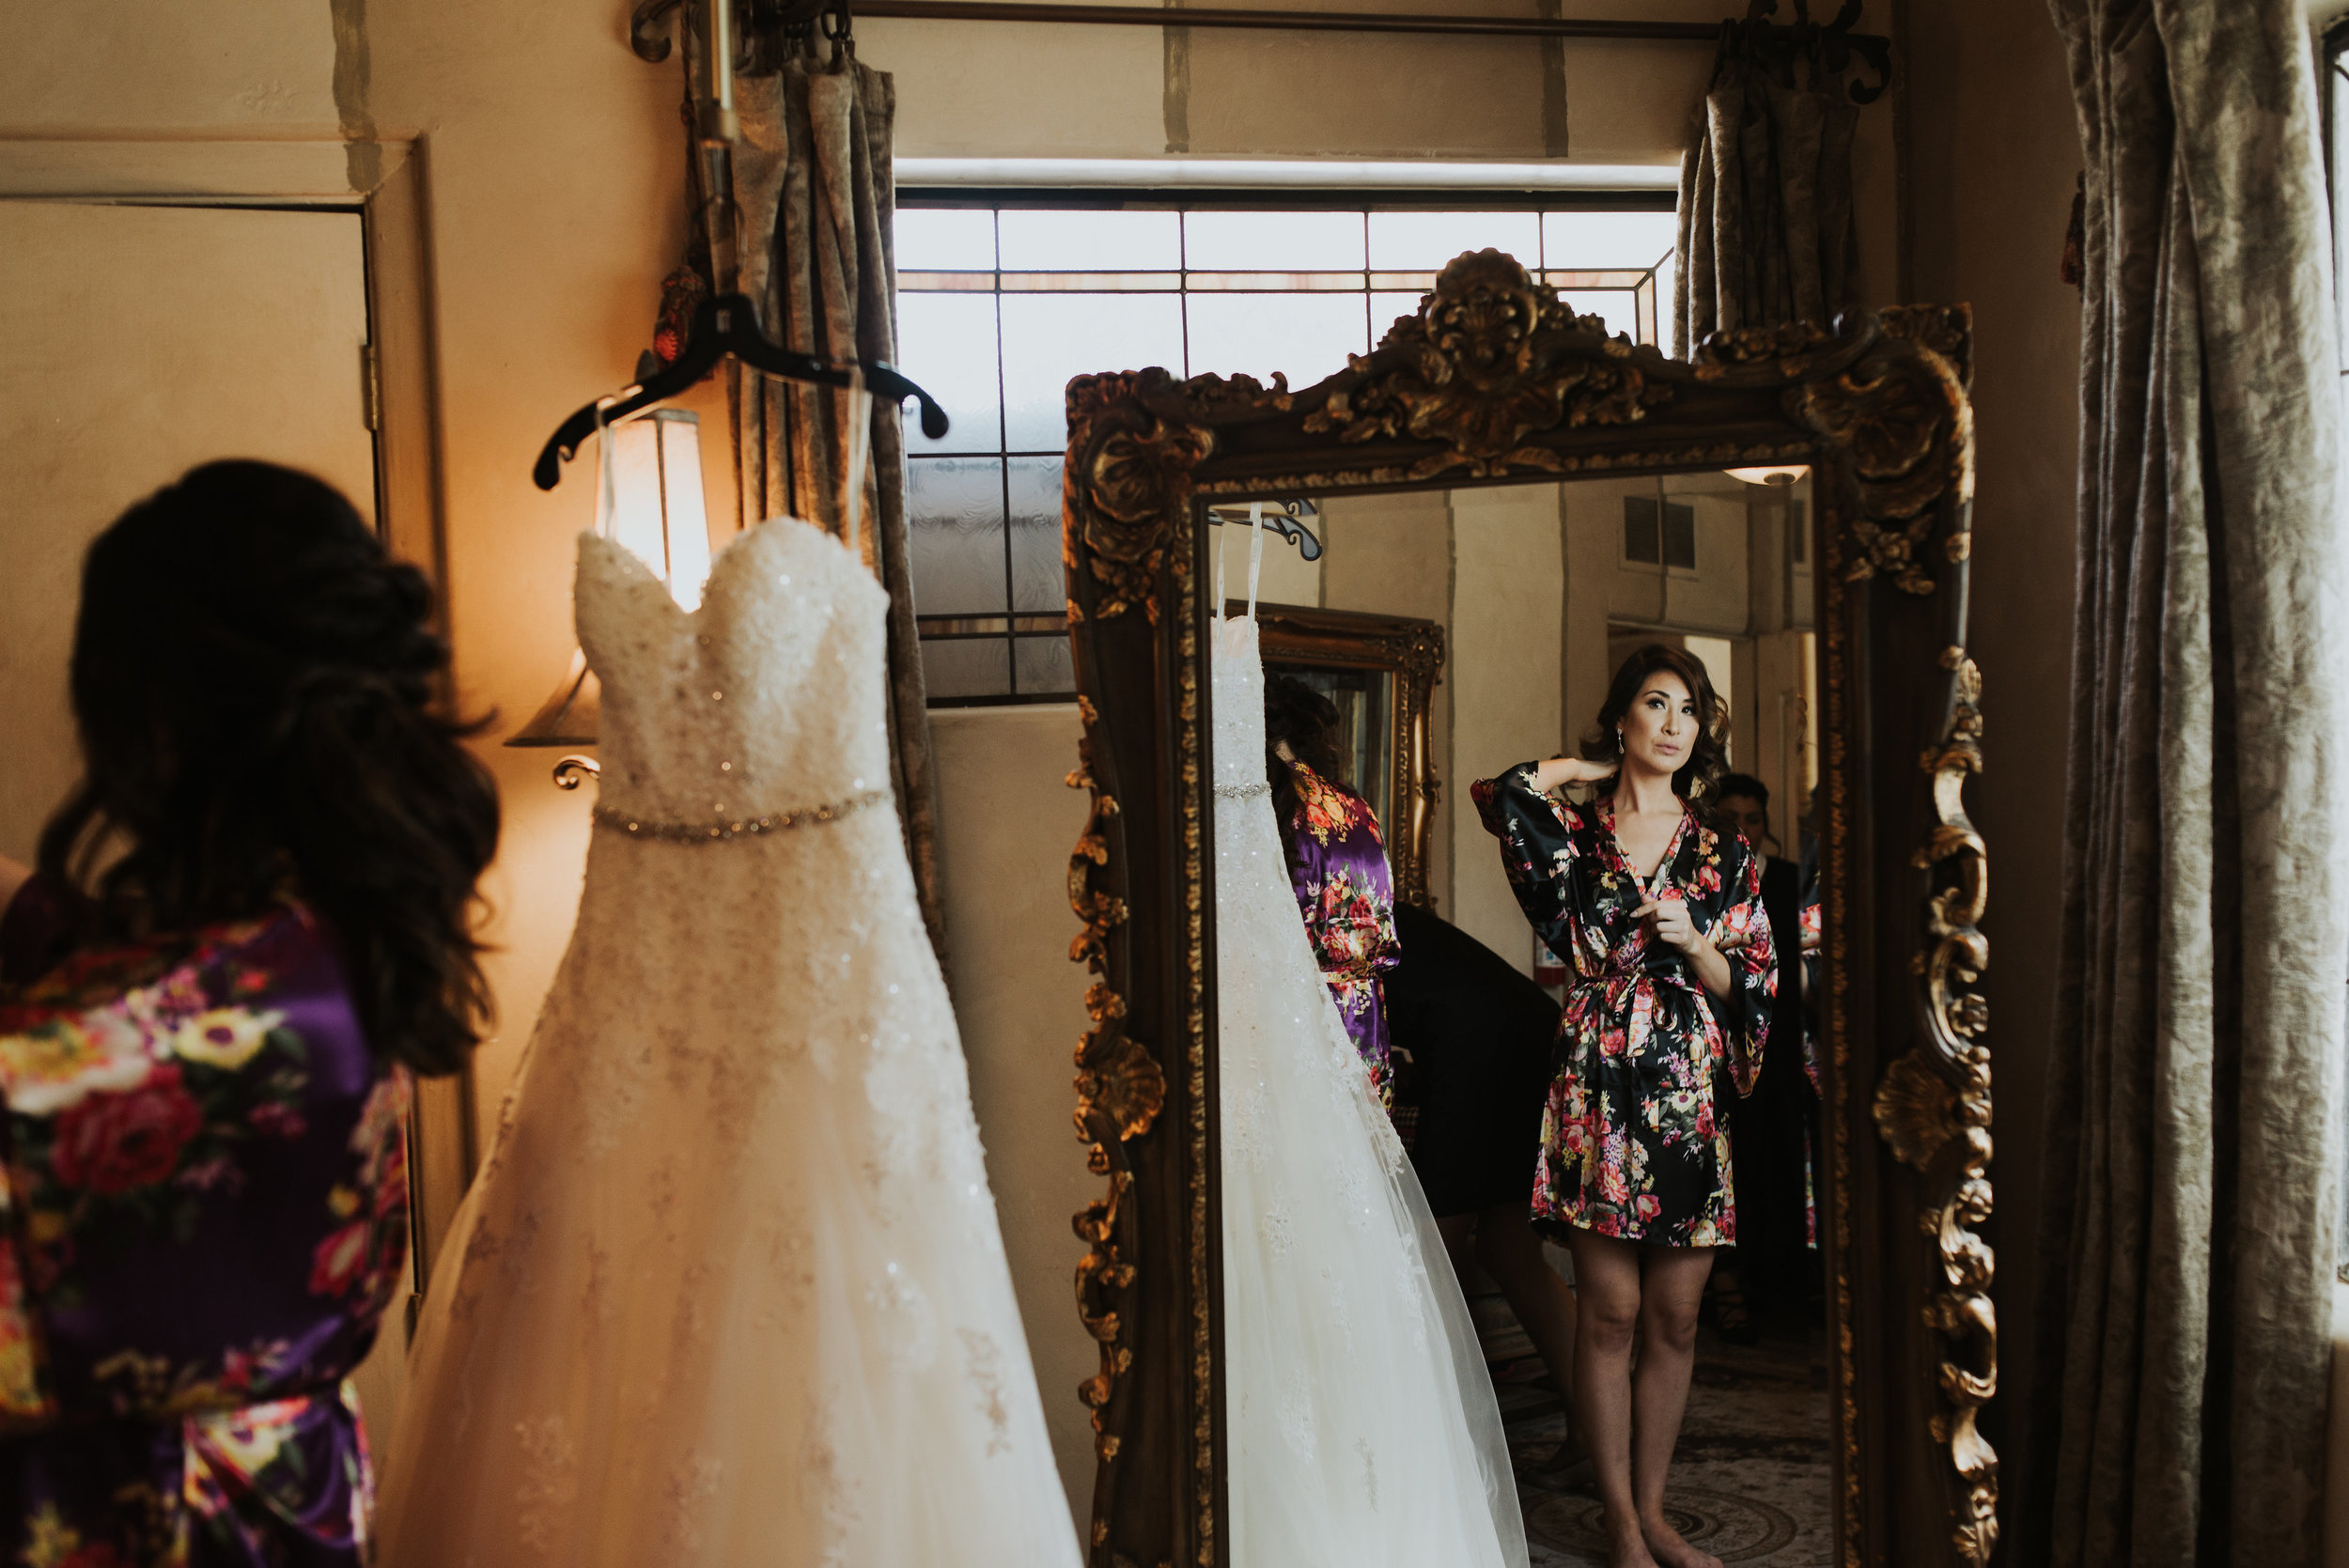 Help Pick Dresses - Help the Bride choose her wedding dress and provide input for the Bridesmaids dresses